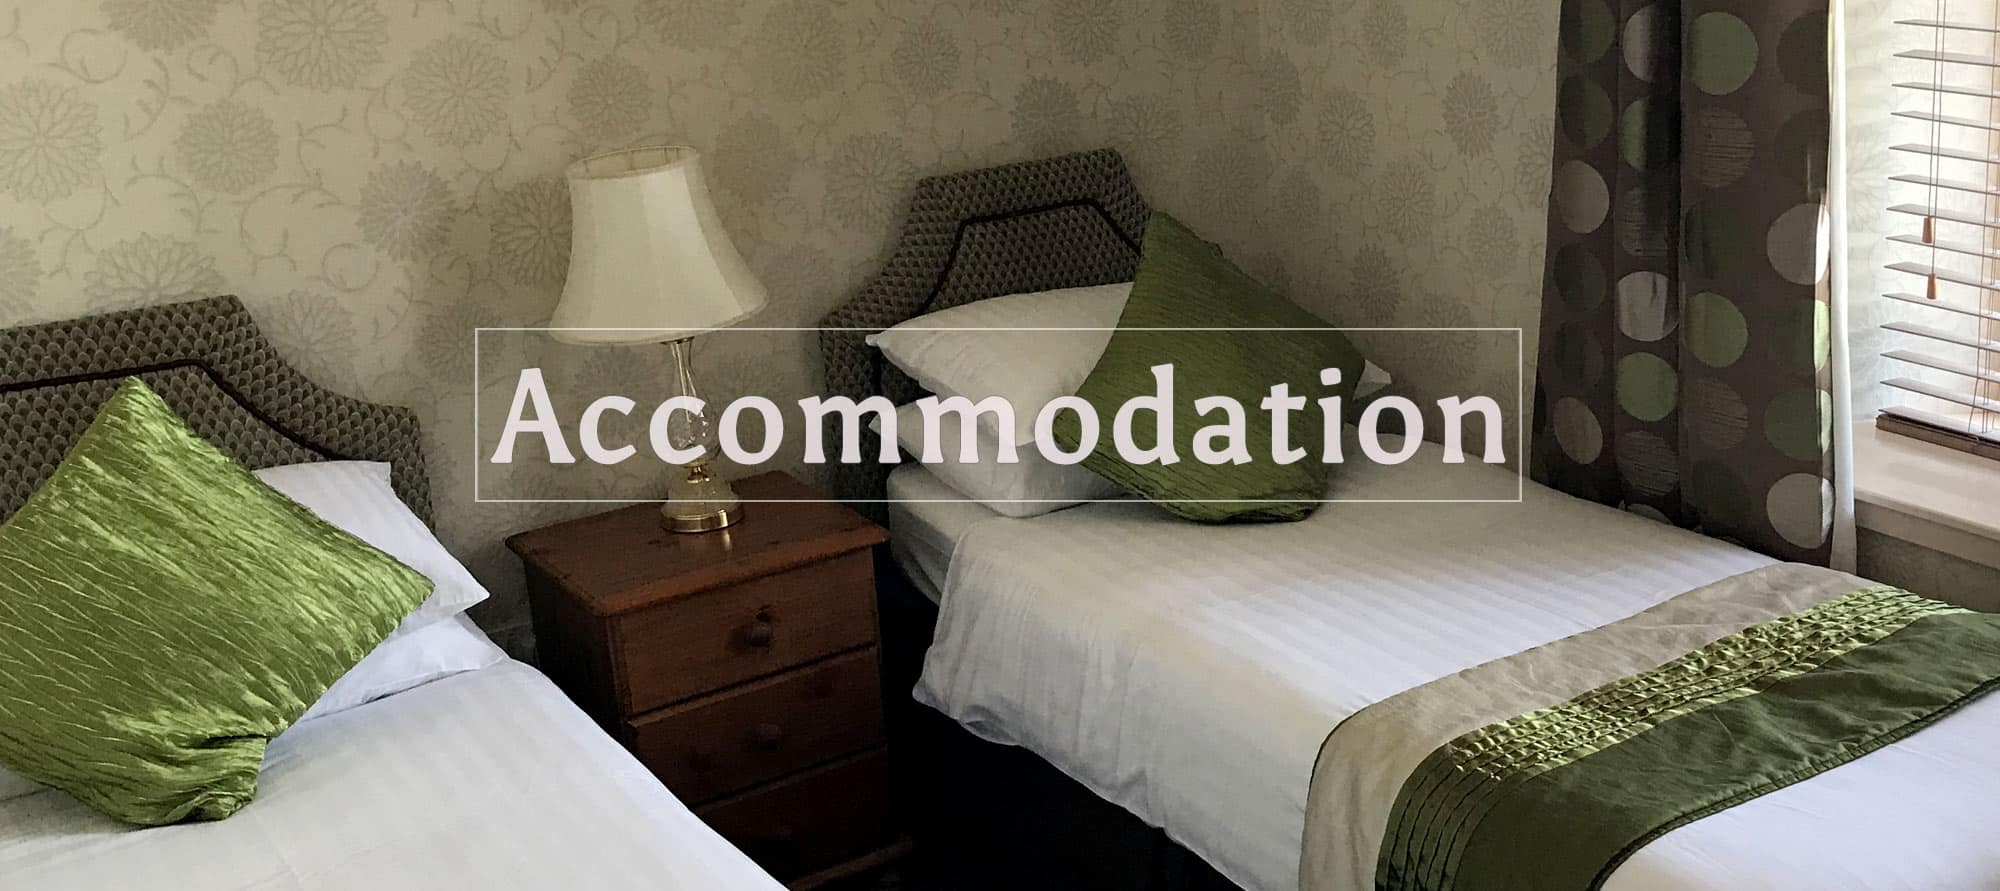 Accommodation at the Alexandra Hotel Ballater